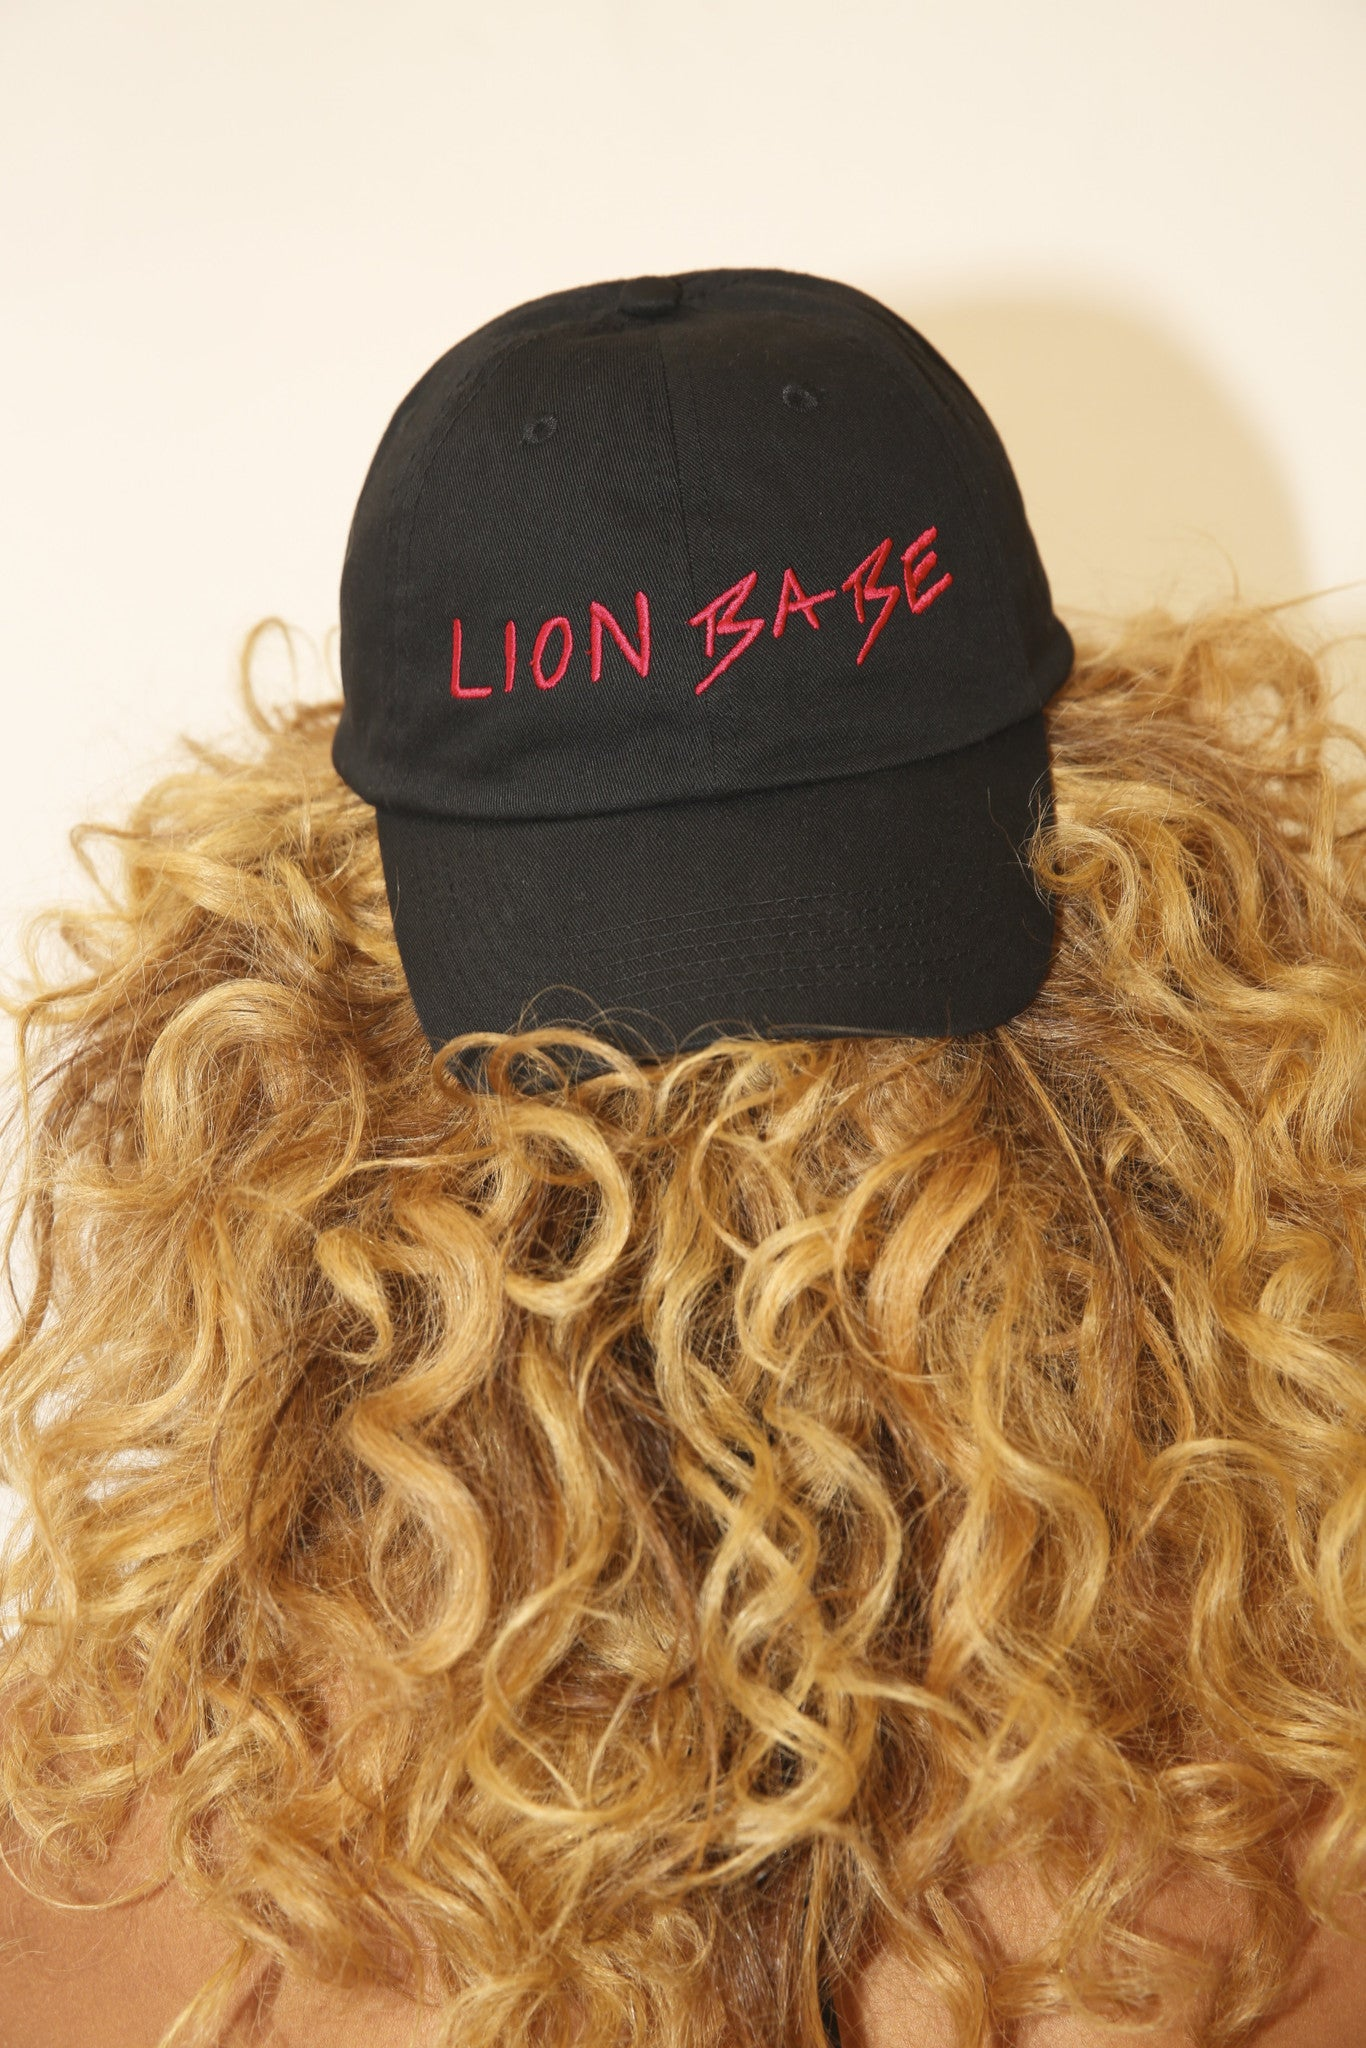 LION BABE BASEBALL HAT